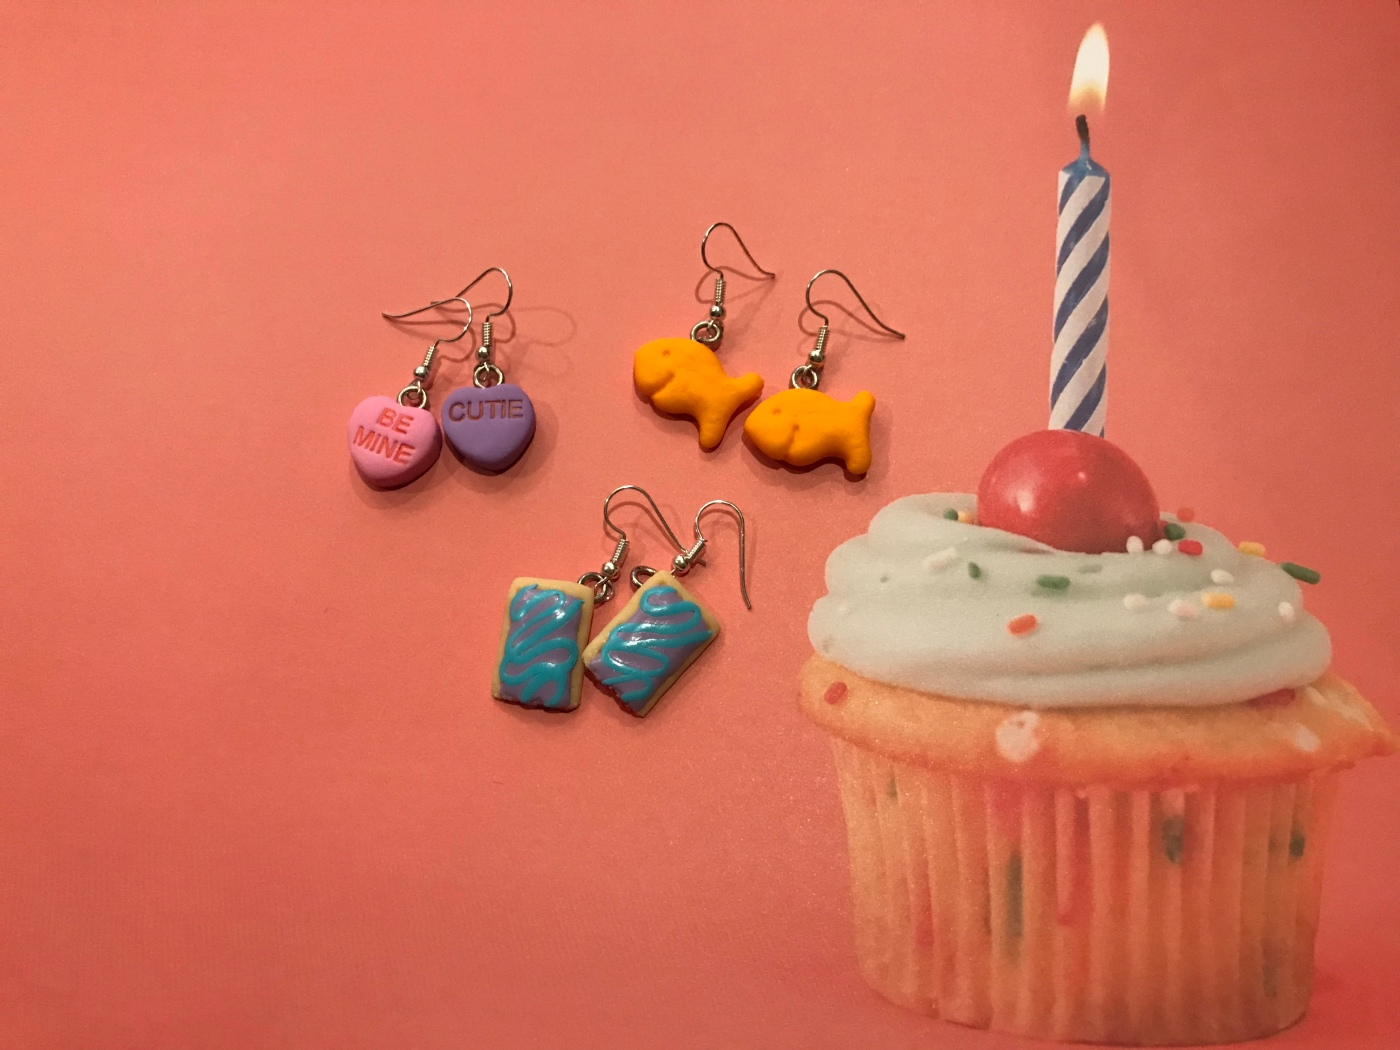 Sweethearts Conversation Heart, Goldfish Cracker and Wild! Berry Pop-Tart Earrings From CMYKlays Jewelry